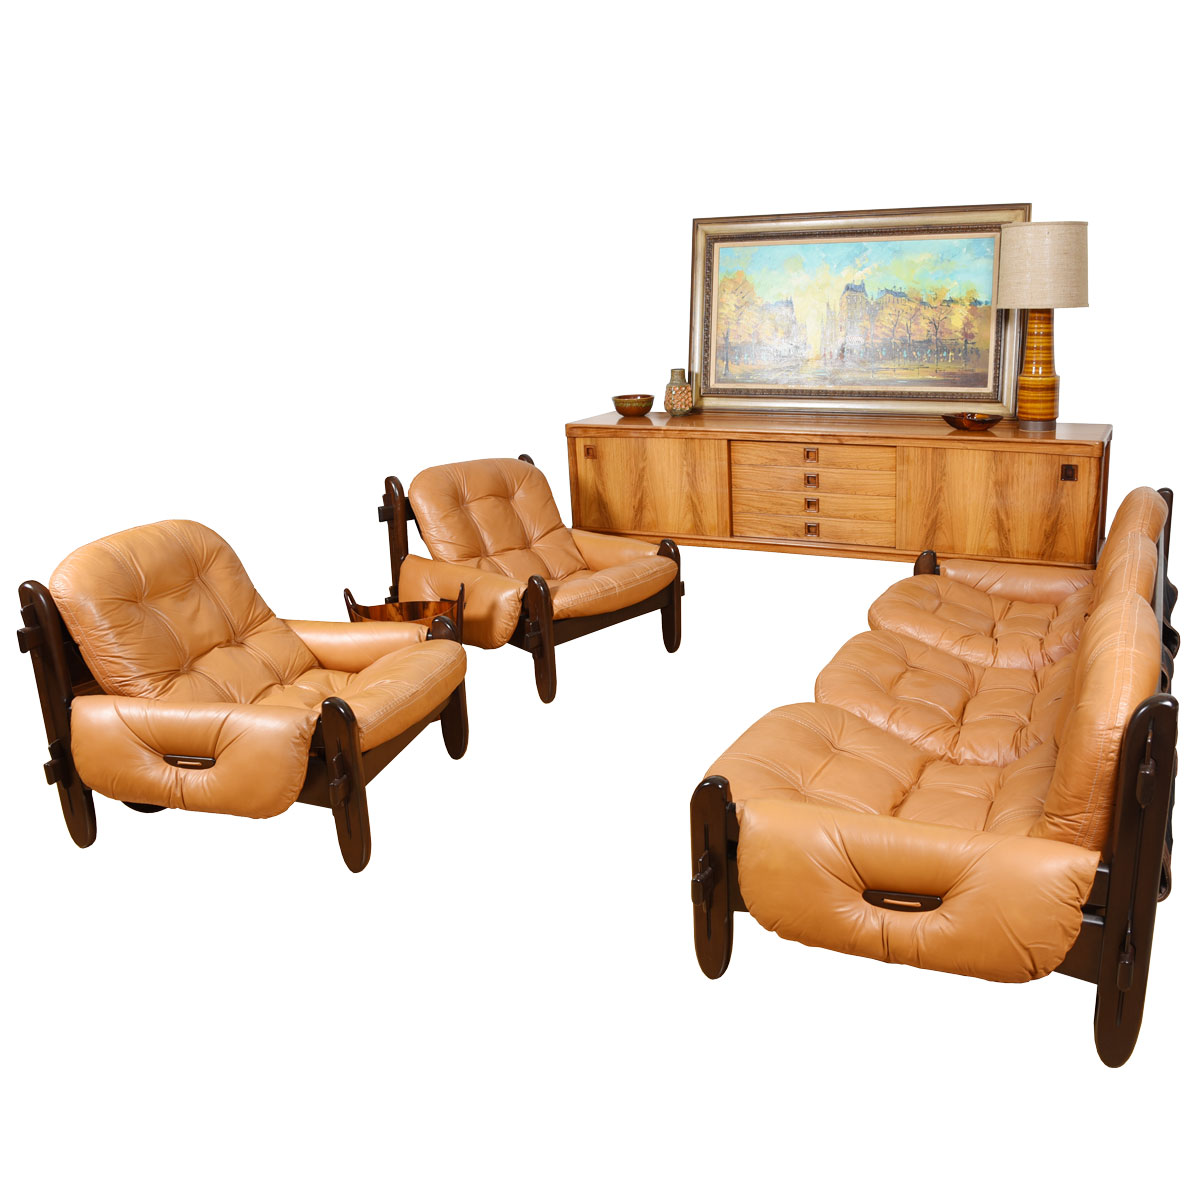 Rare Brazilian Sofa & Lounge Chair Set